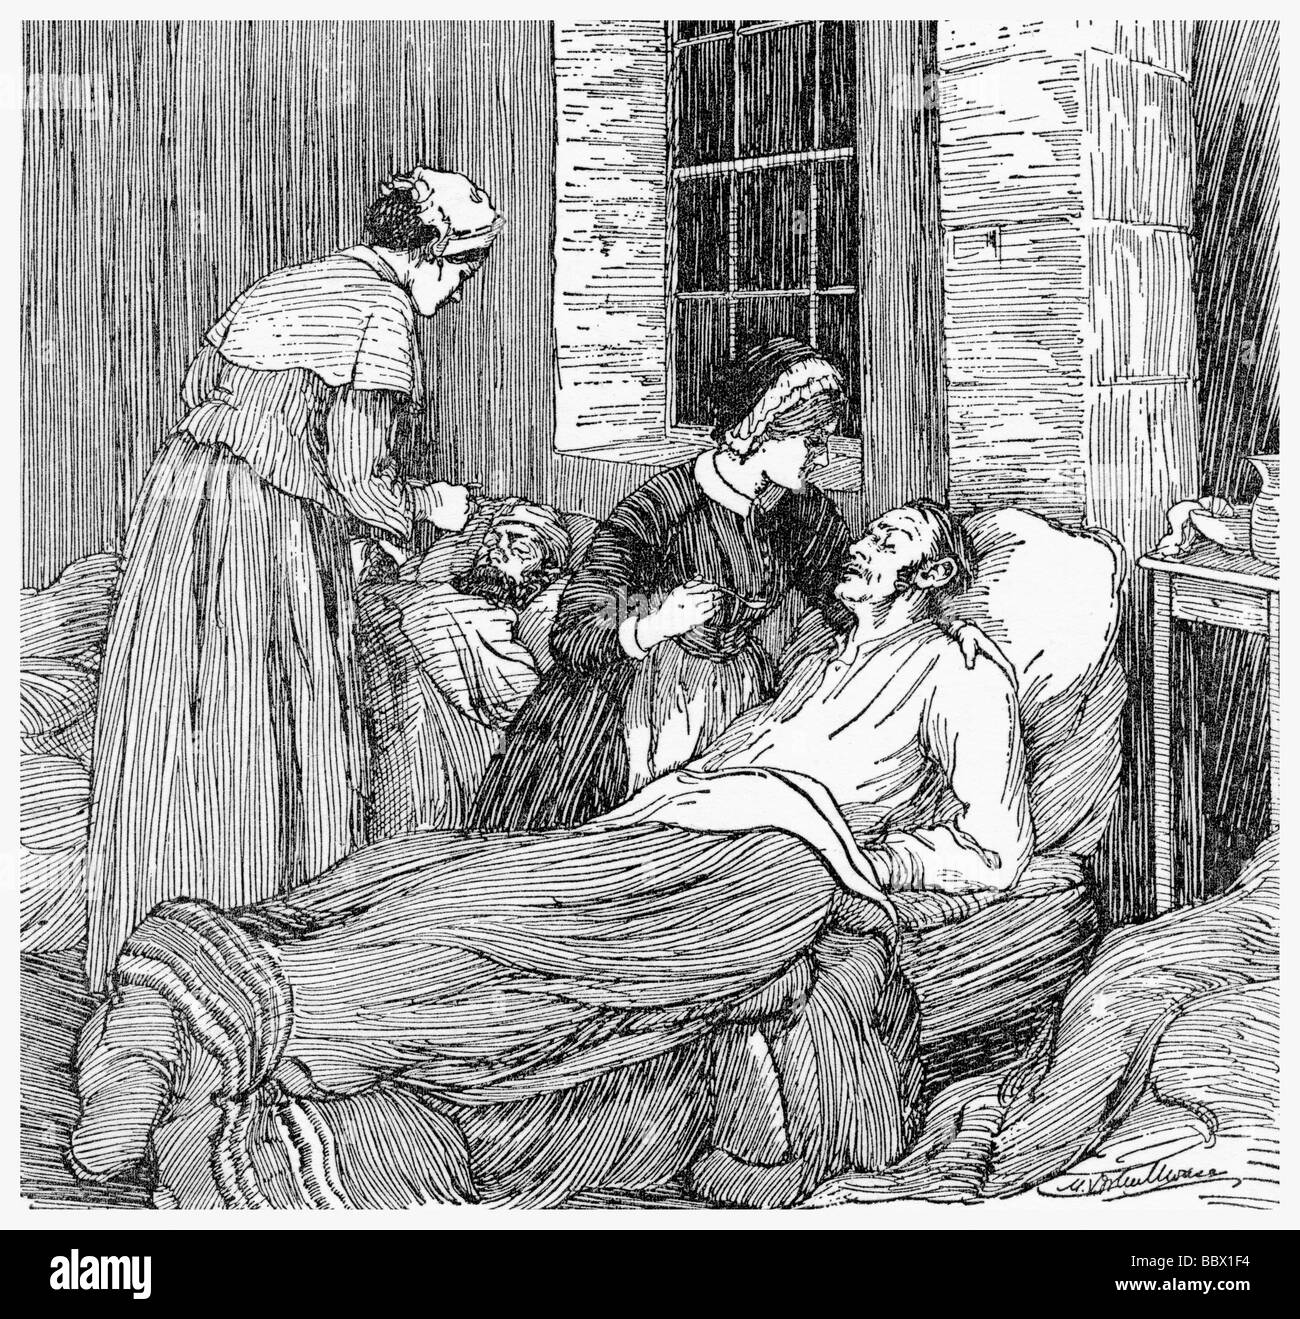 Florence Nightingale administers medicine to a severely wounded soldier during the Crimean War. - Stock Image